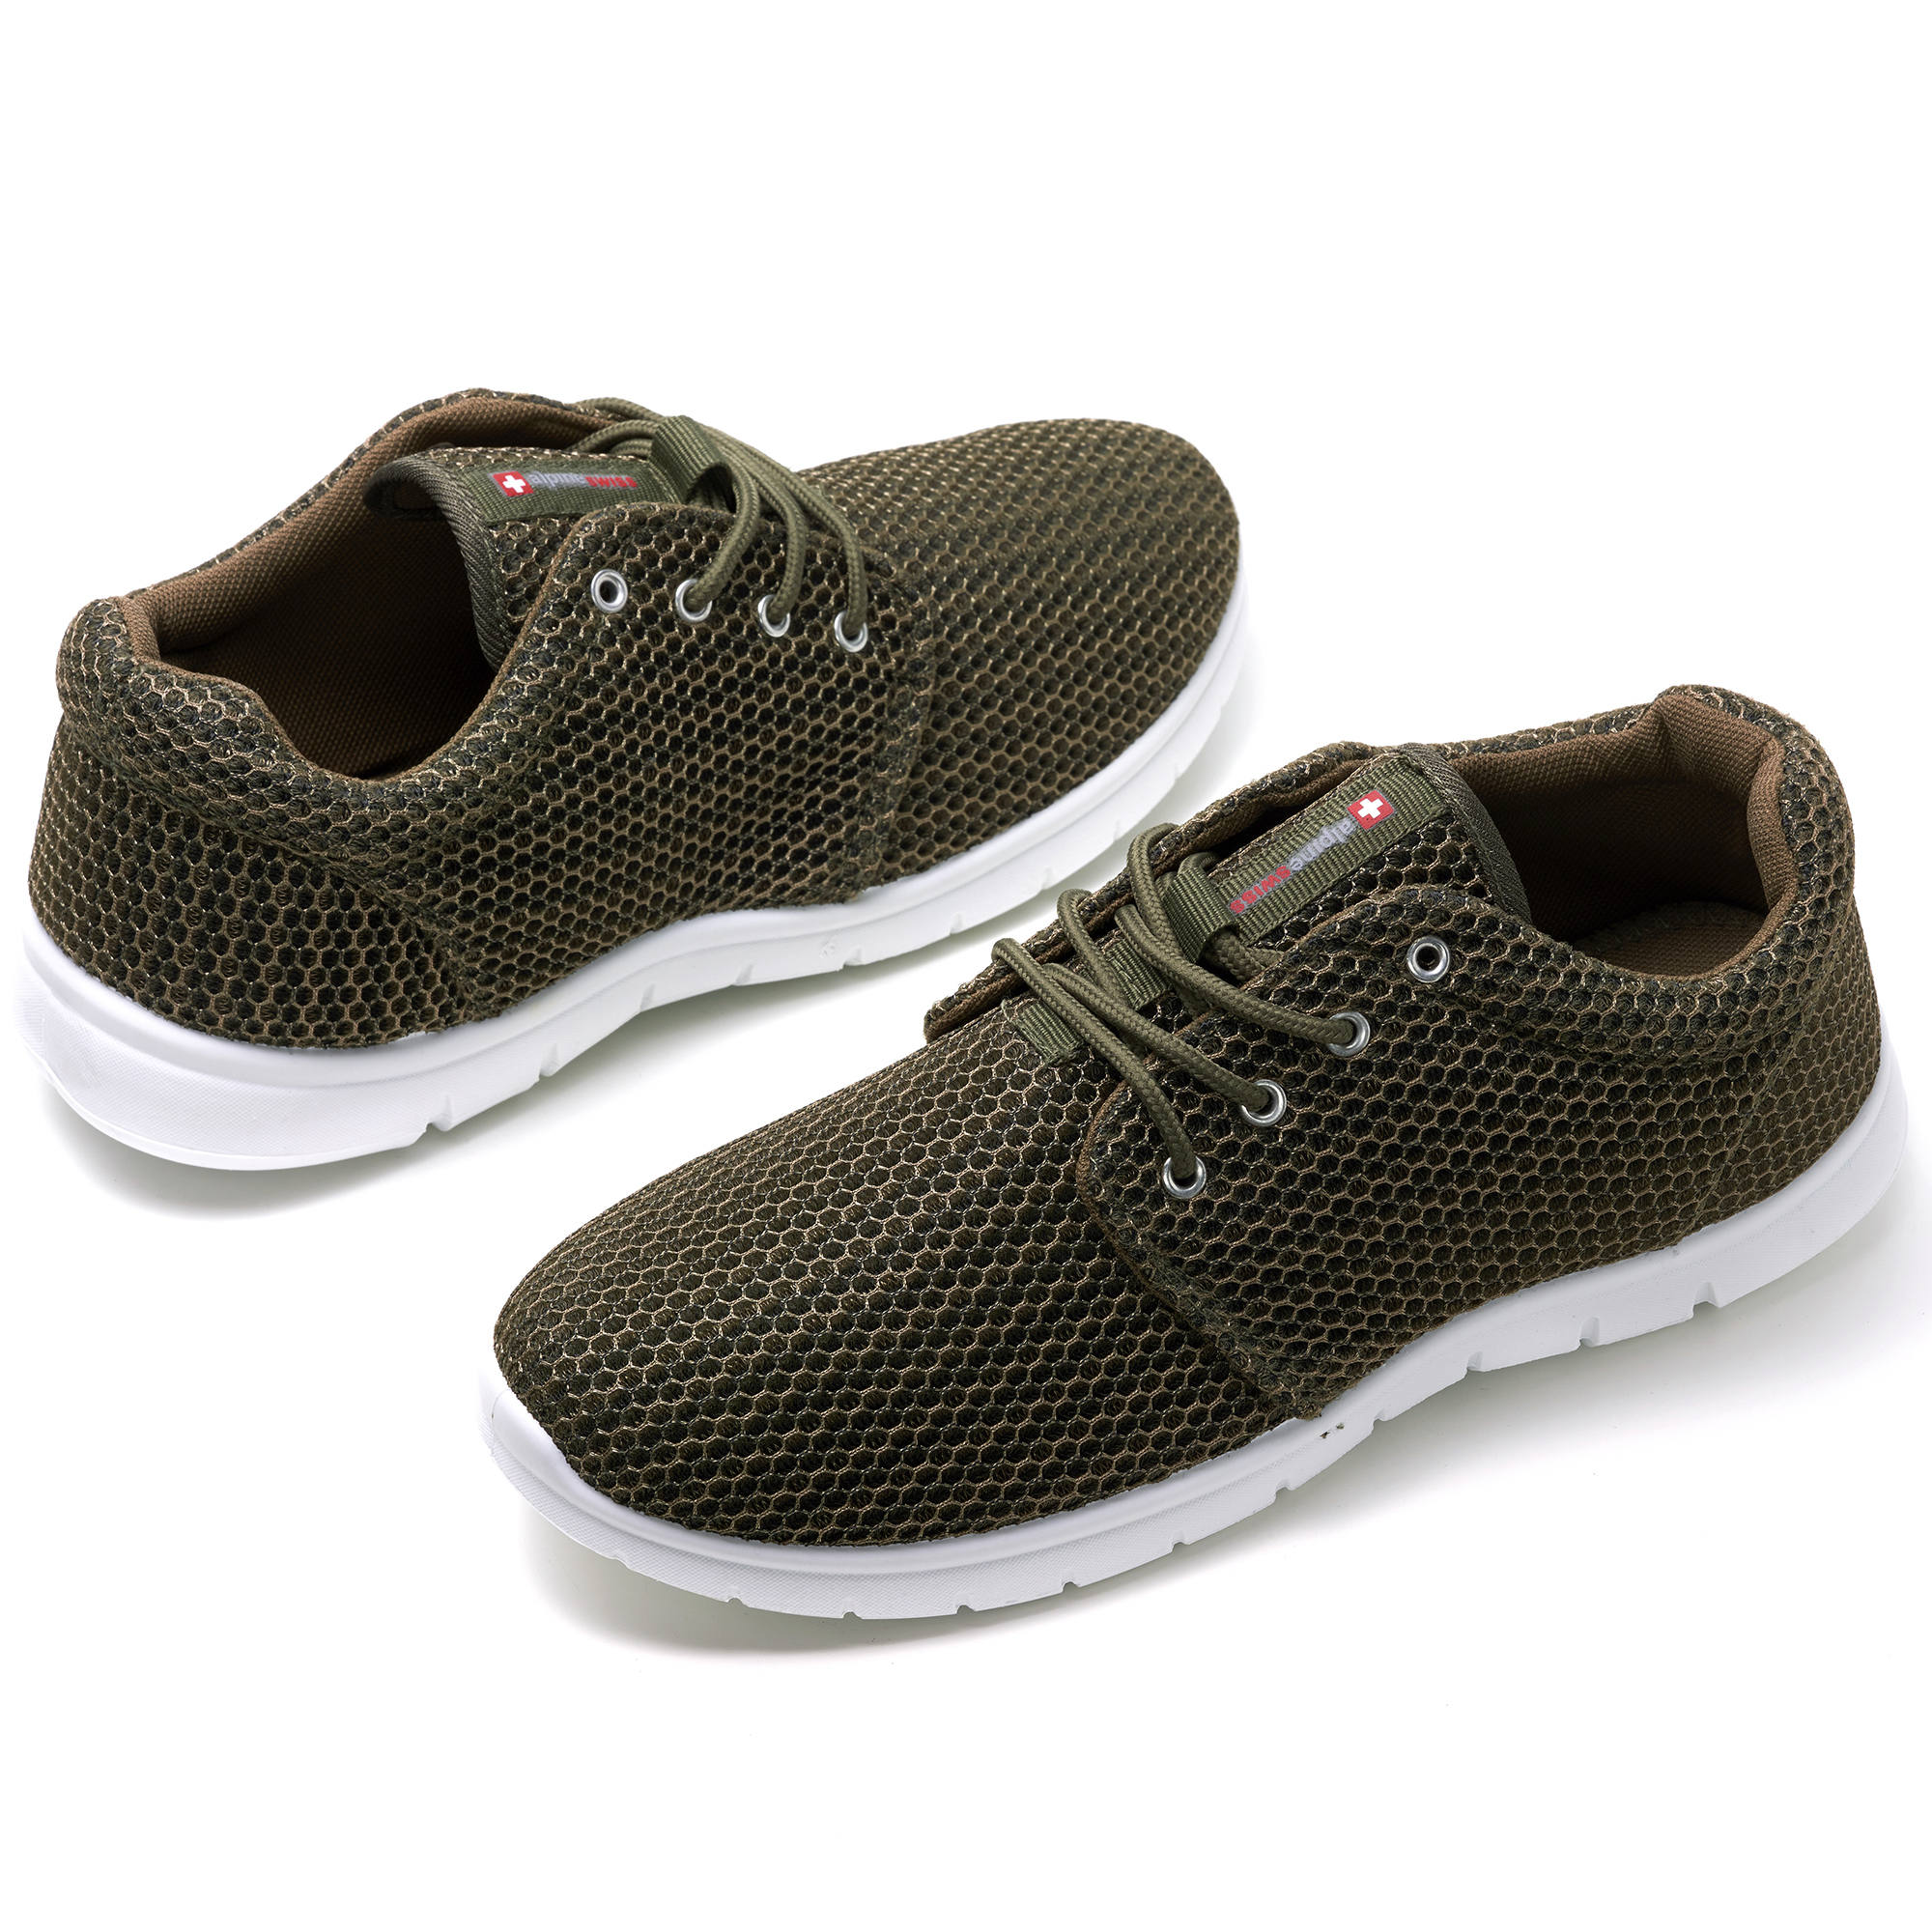 Alpine-Swiss-Kilian-Mesh-Sneakers-Casual-Shoes-Mens-amp-Womens-Lightweight-Trainer thumbnail 51